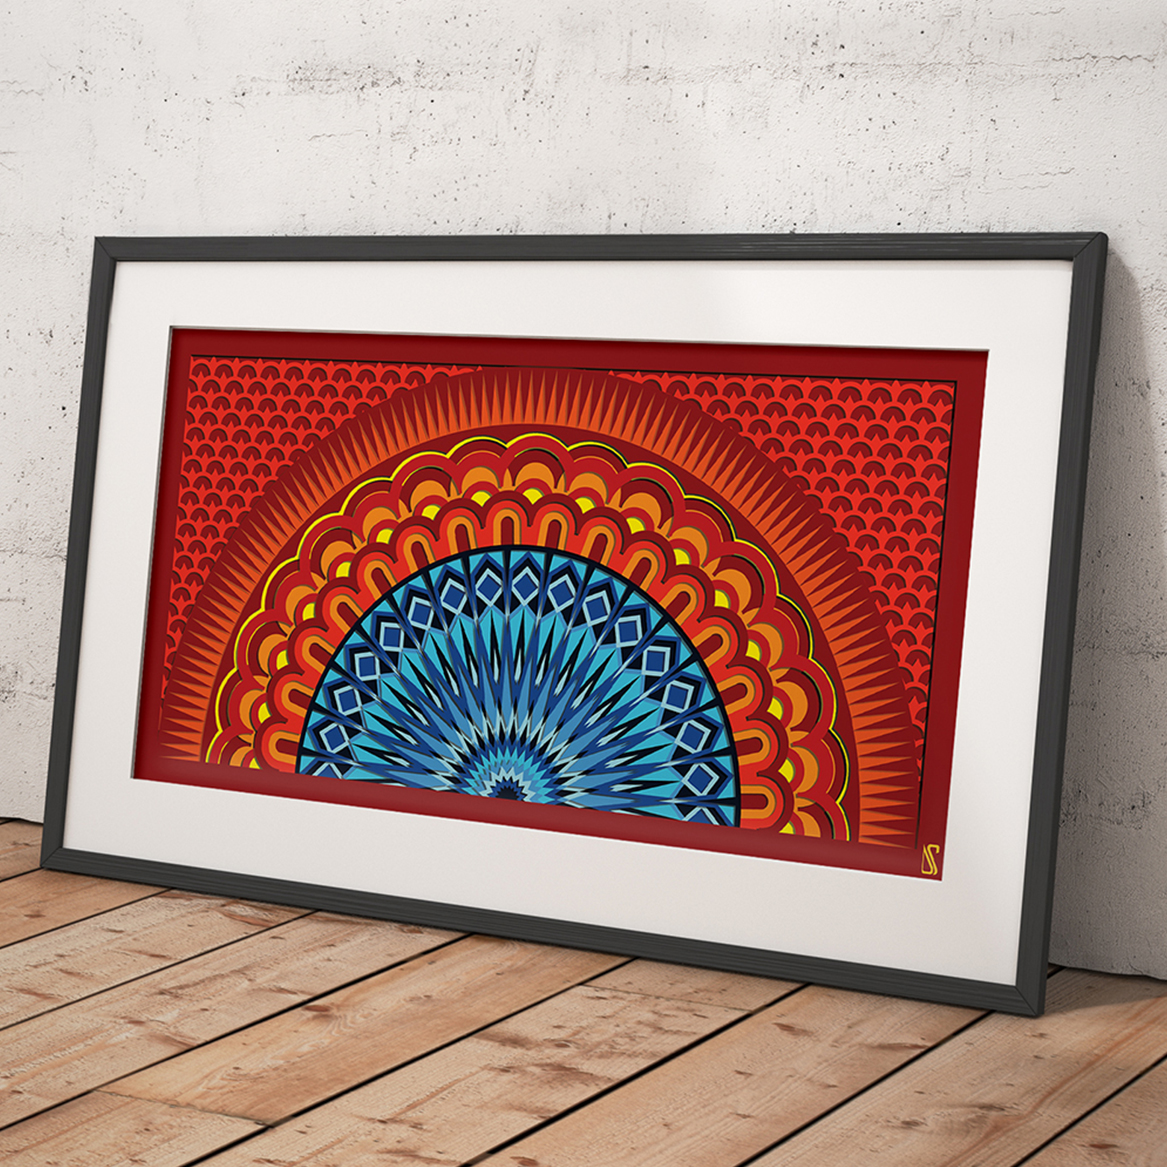 Indian Mandala Printable Sunset Living Room Wall Art Colorful Abstract Geometry Sunset Digital Artwork Instant Download Meditation Art From Scaled